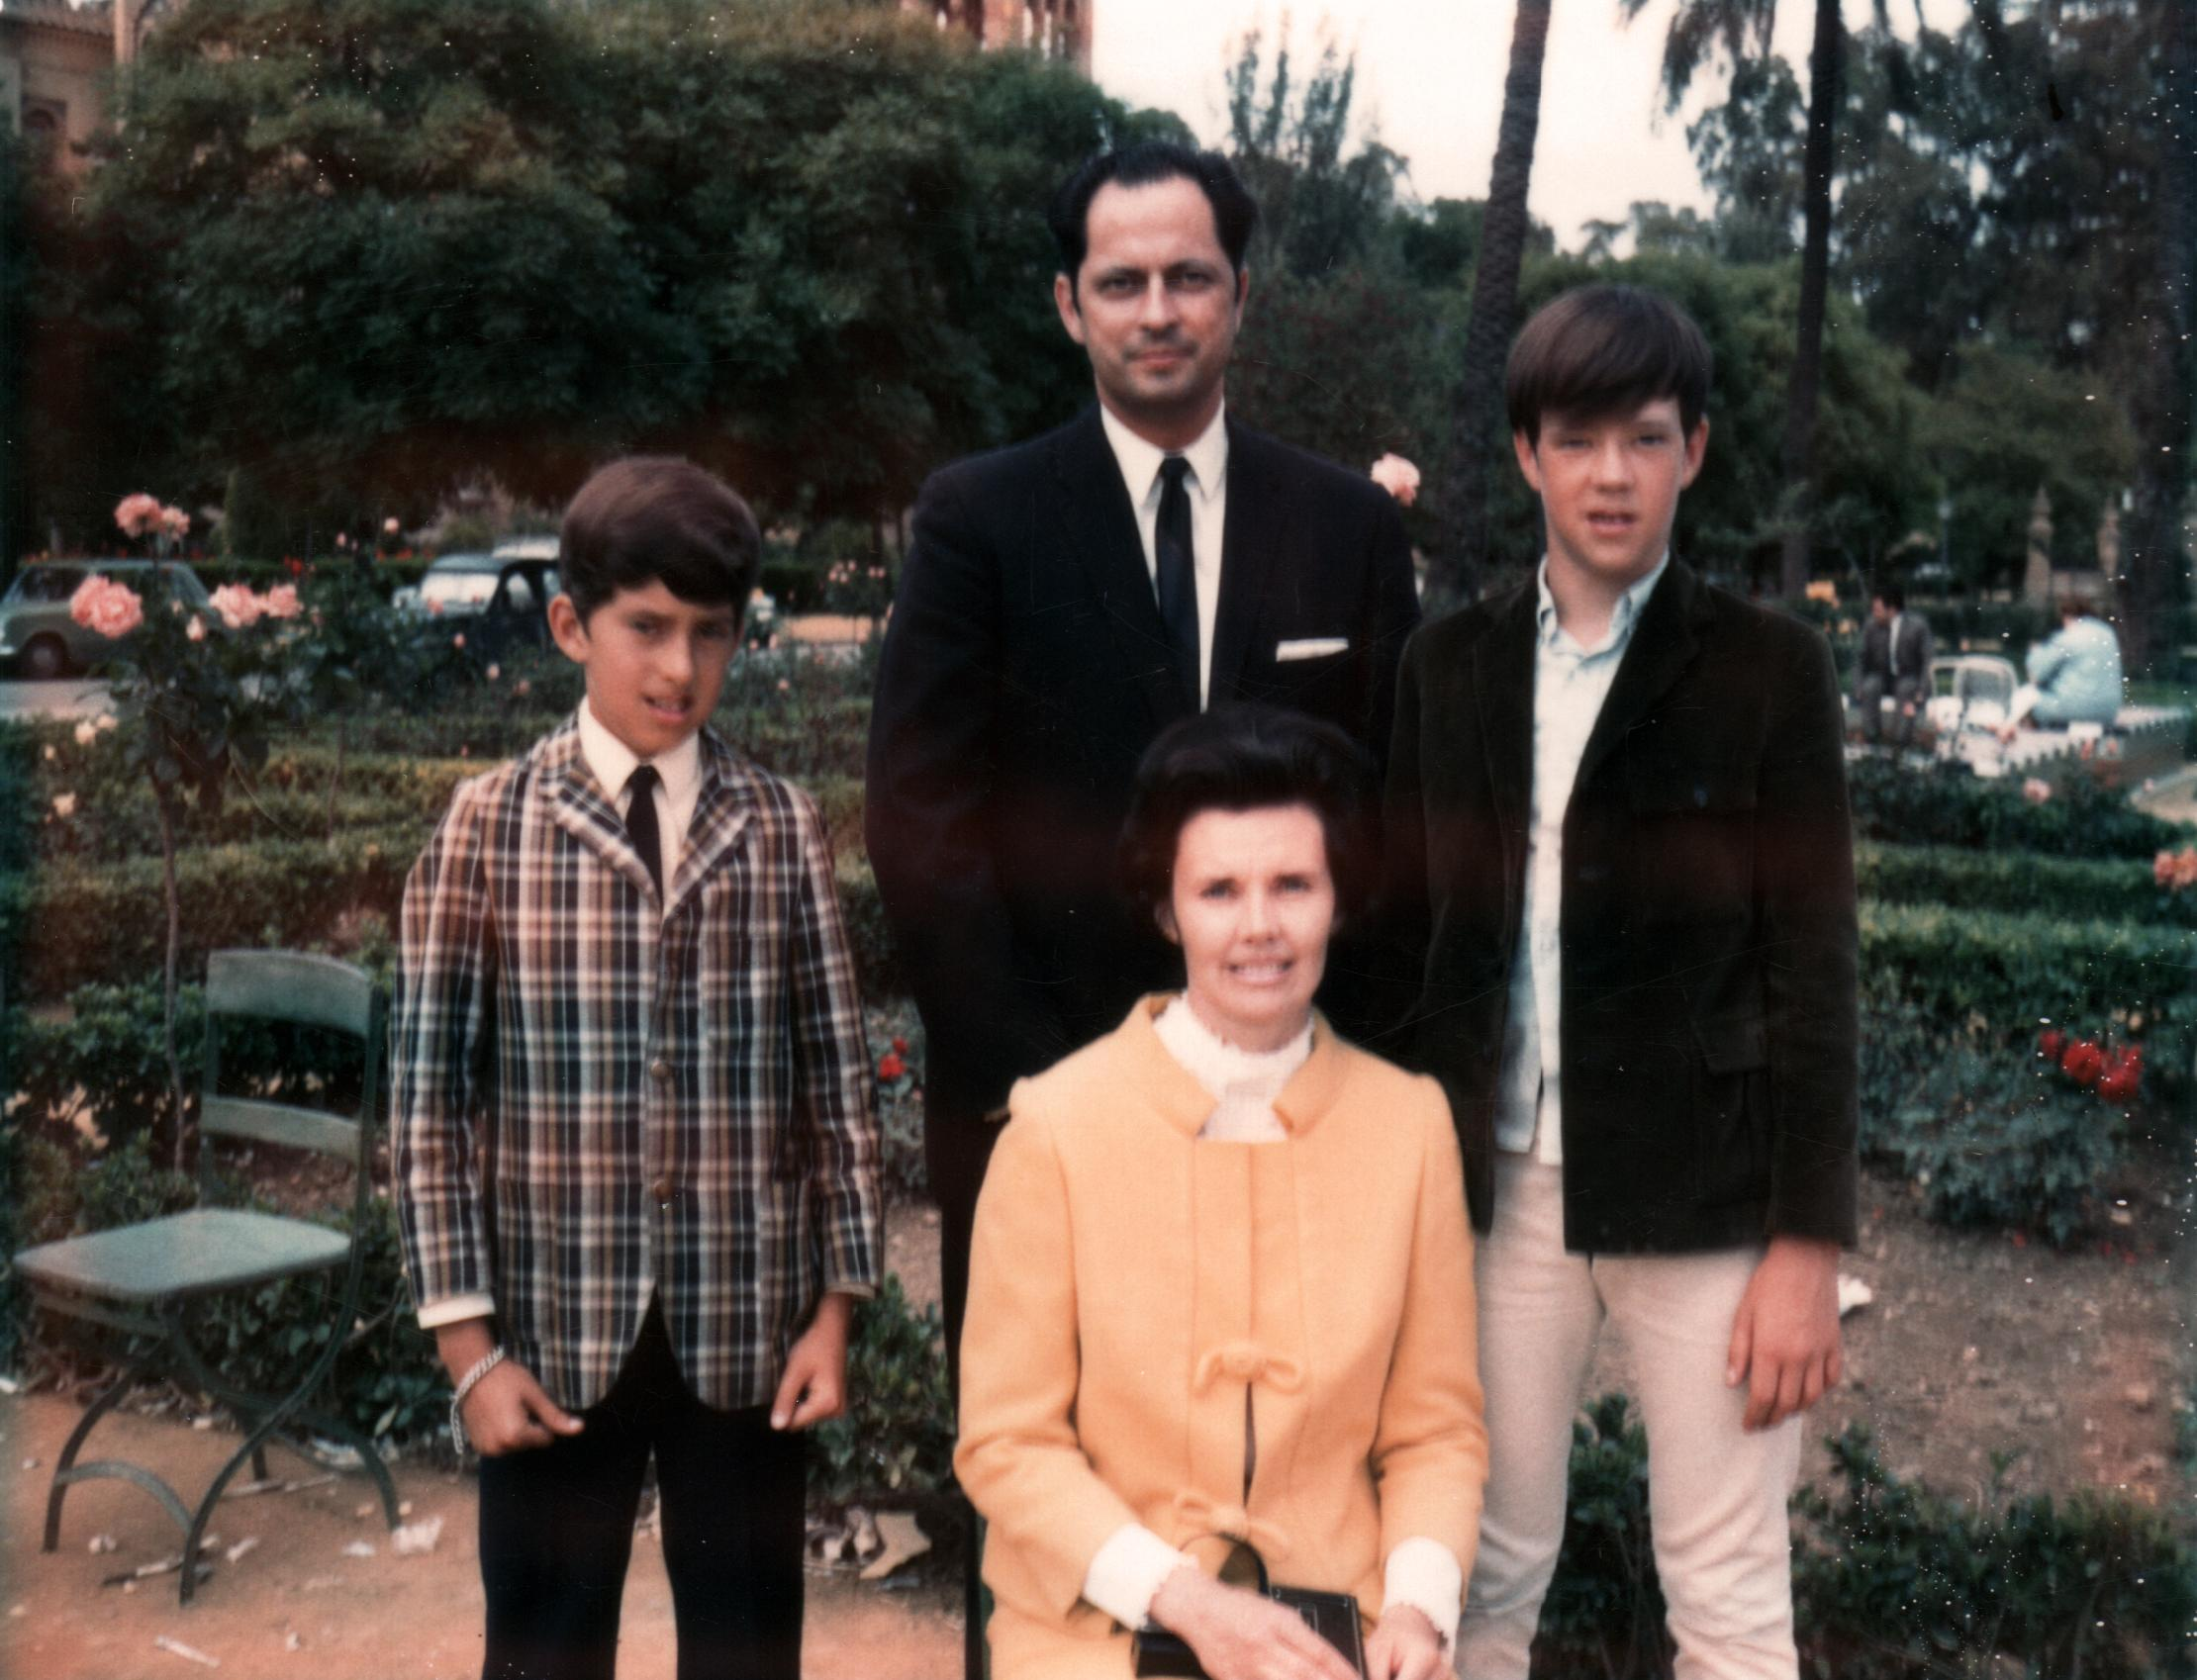 Elder Robert D. Hales with his wife and two sons in 1969 (Photo: LDS church, Copyright Intellectual Reserve, Inc.)